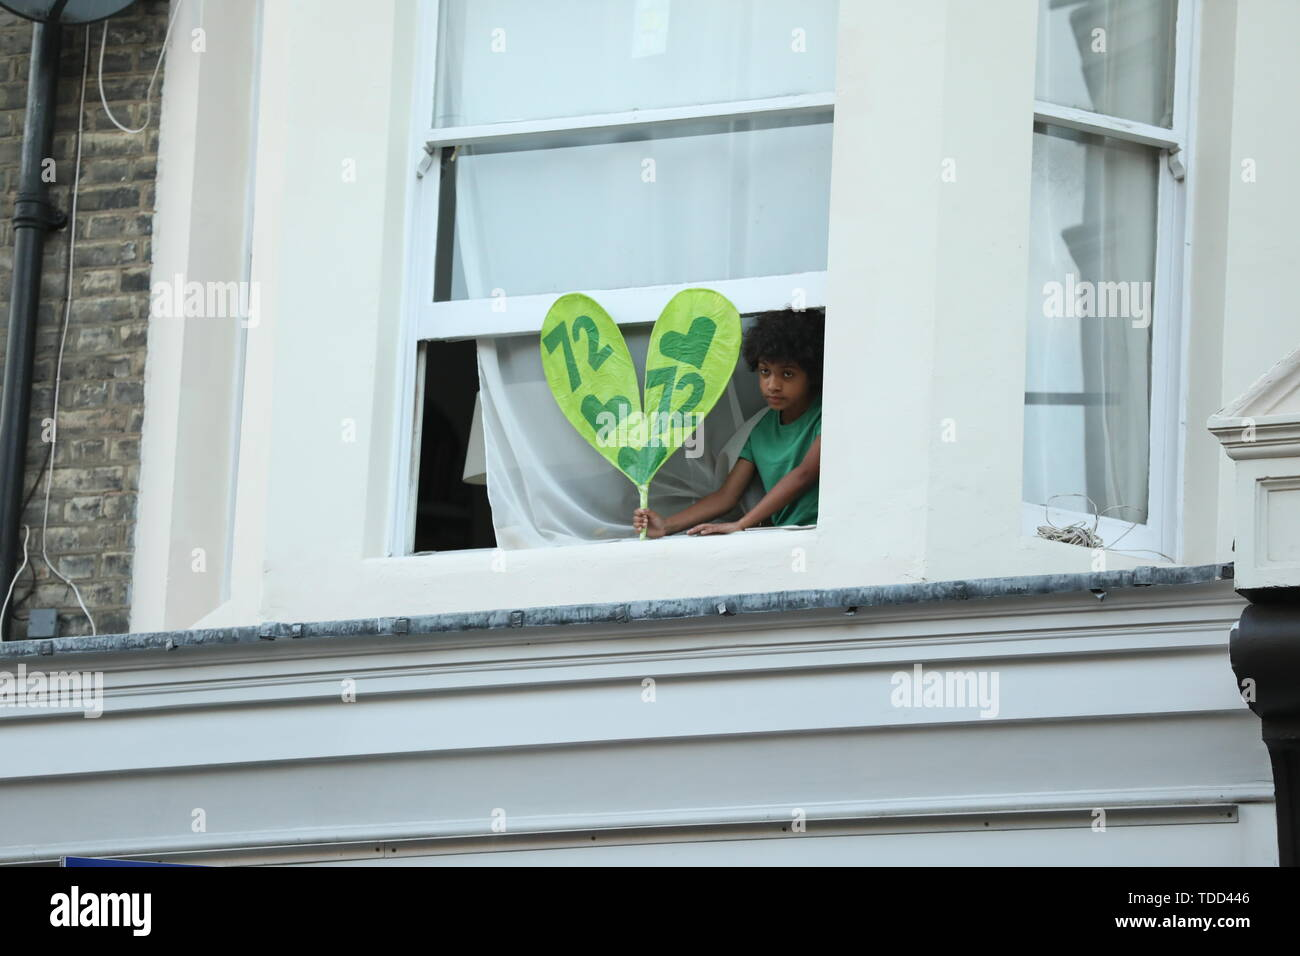 A child holds a placard outside his window, as family and friends of the 72 people who lost their lives in the Grenfell Tower block fire take part in a silent walk in London, to mark the two-year anniversary. - Stock Image